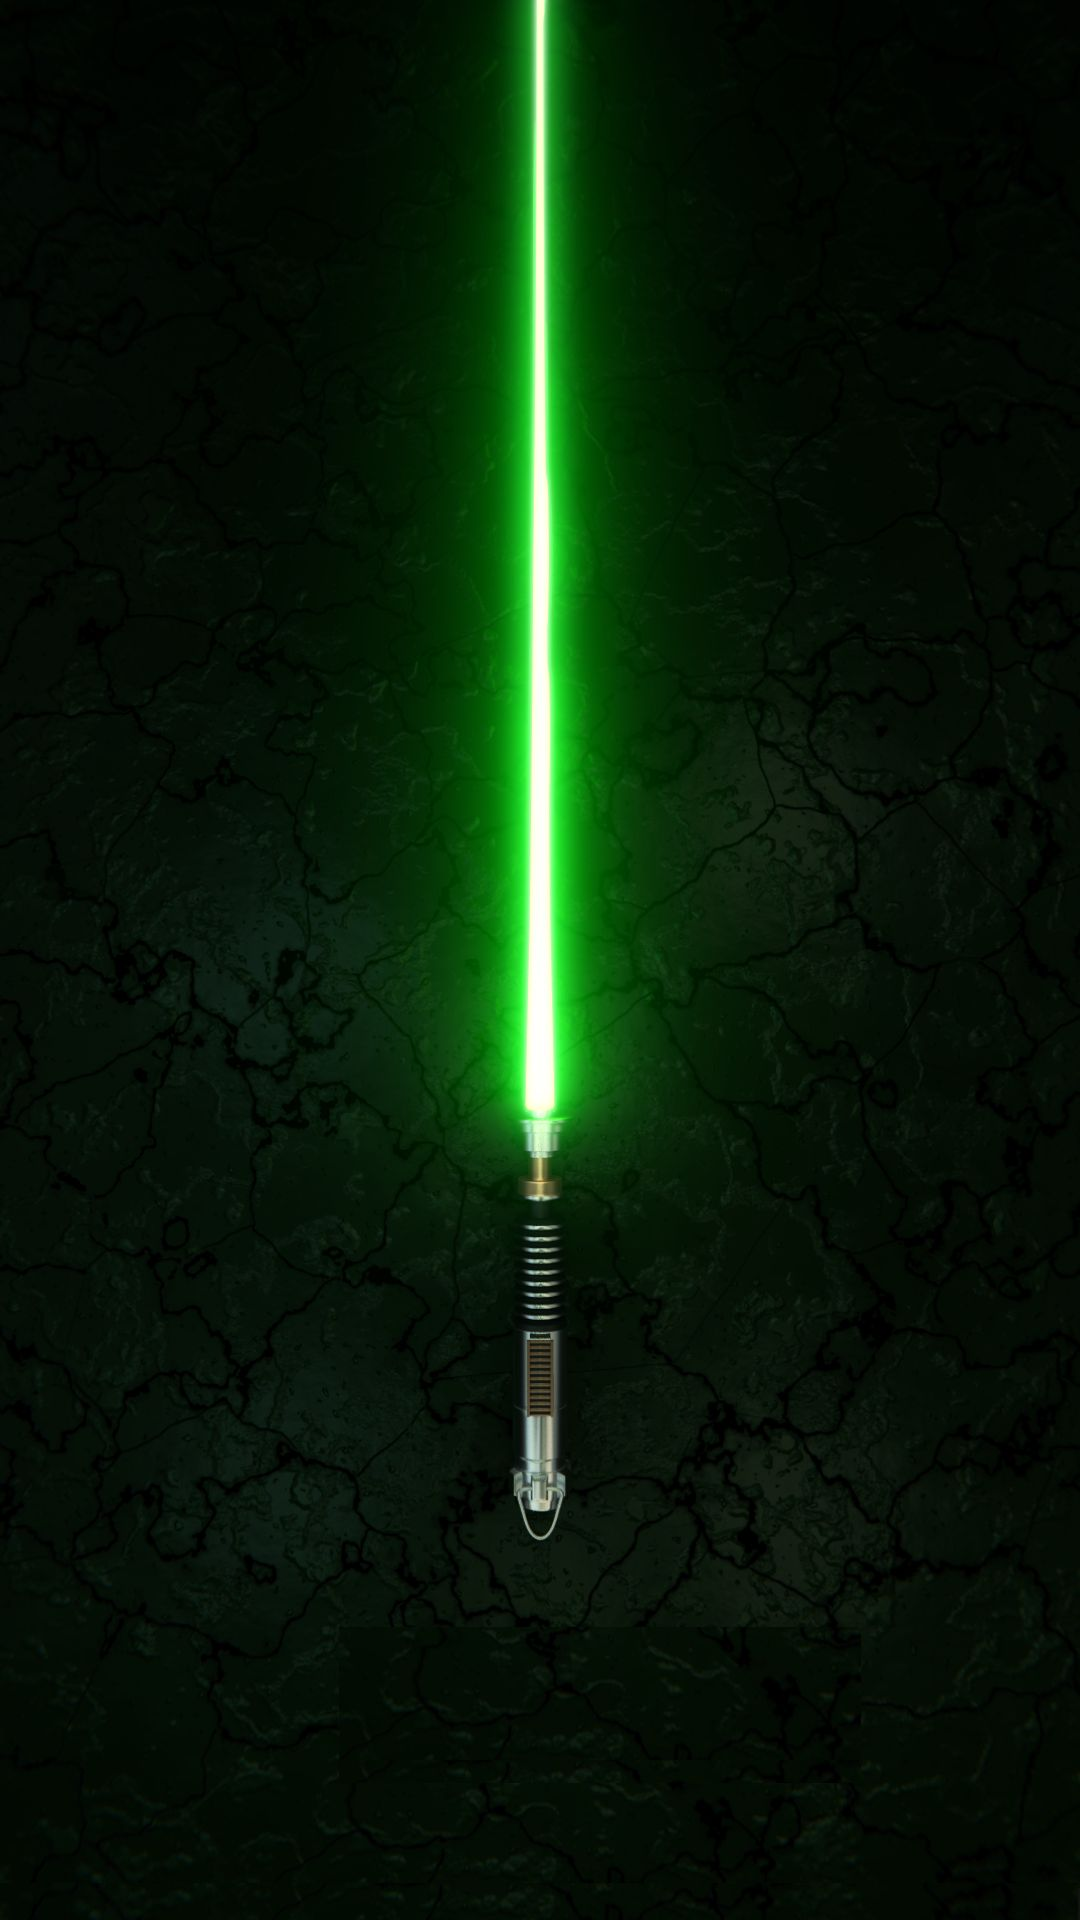 Jedi Iphone Wallpaper Posted By Samantha Tremblay